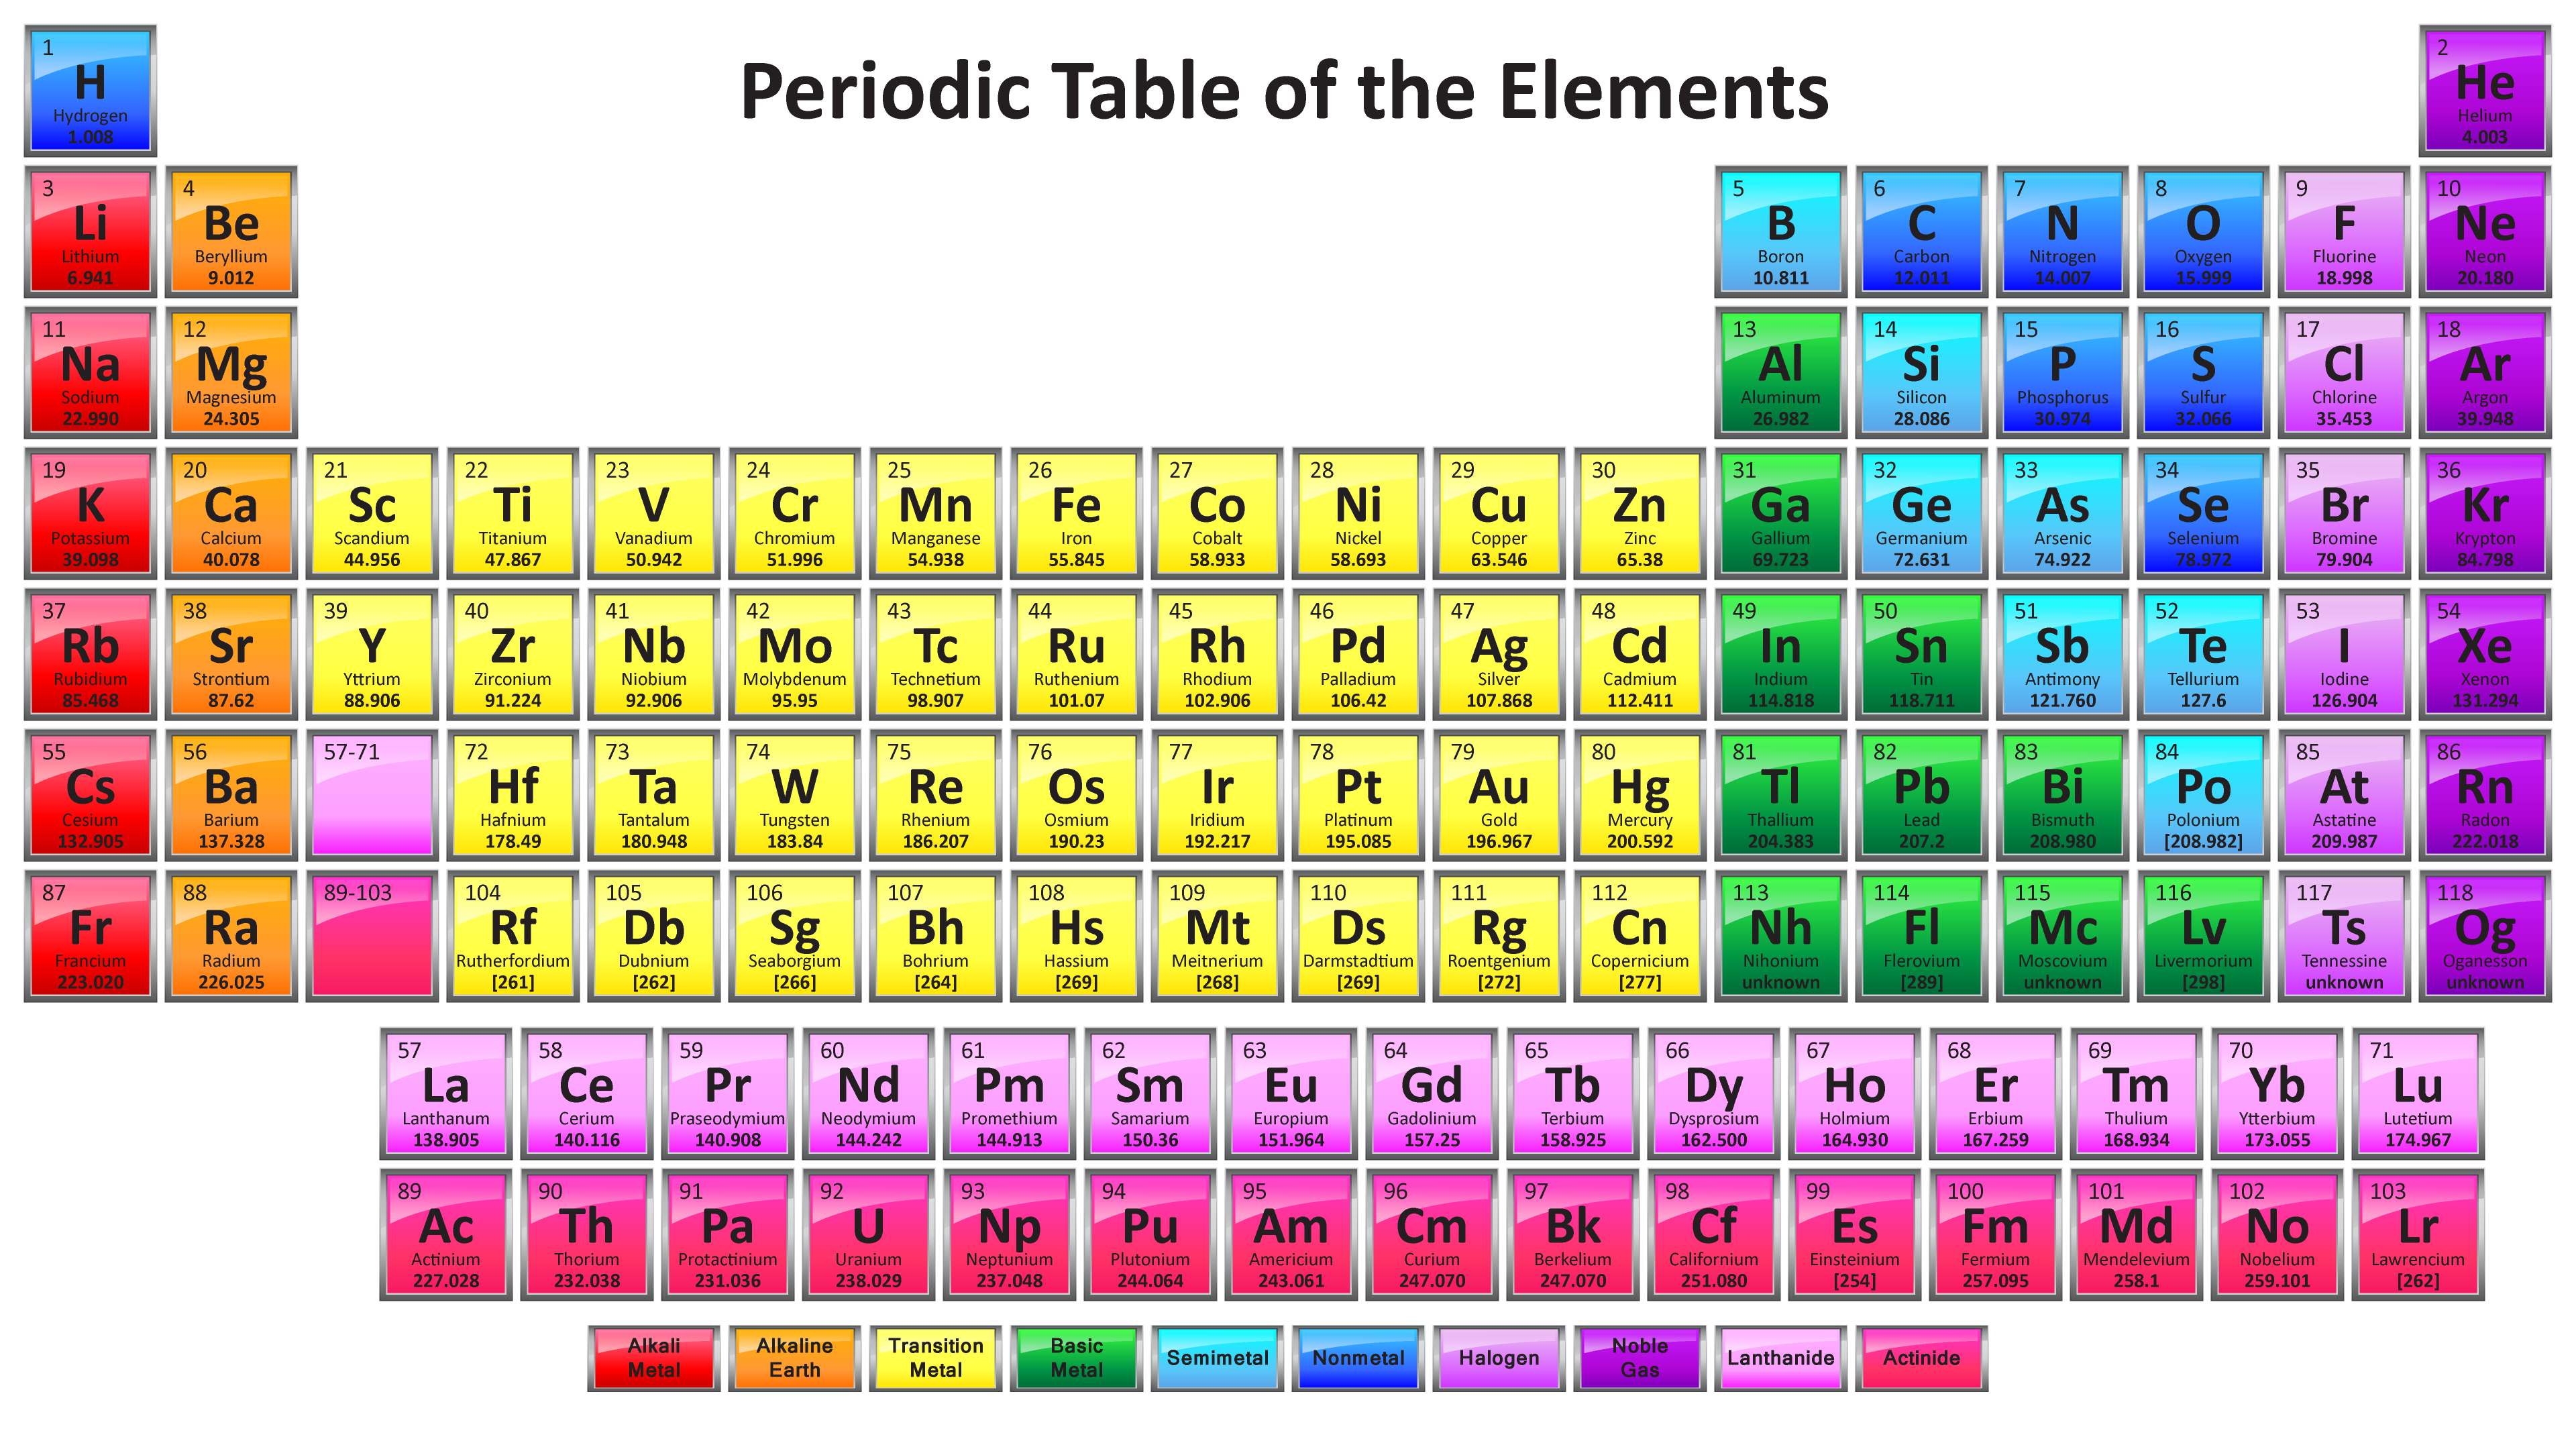 Printable periodic tables for chemistry science notes and projects periodic table with 118 elements urtaz Choice Image